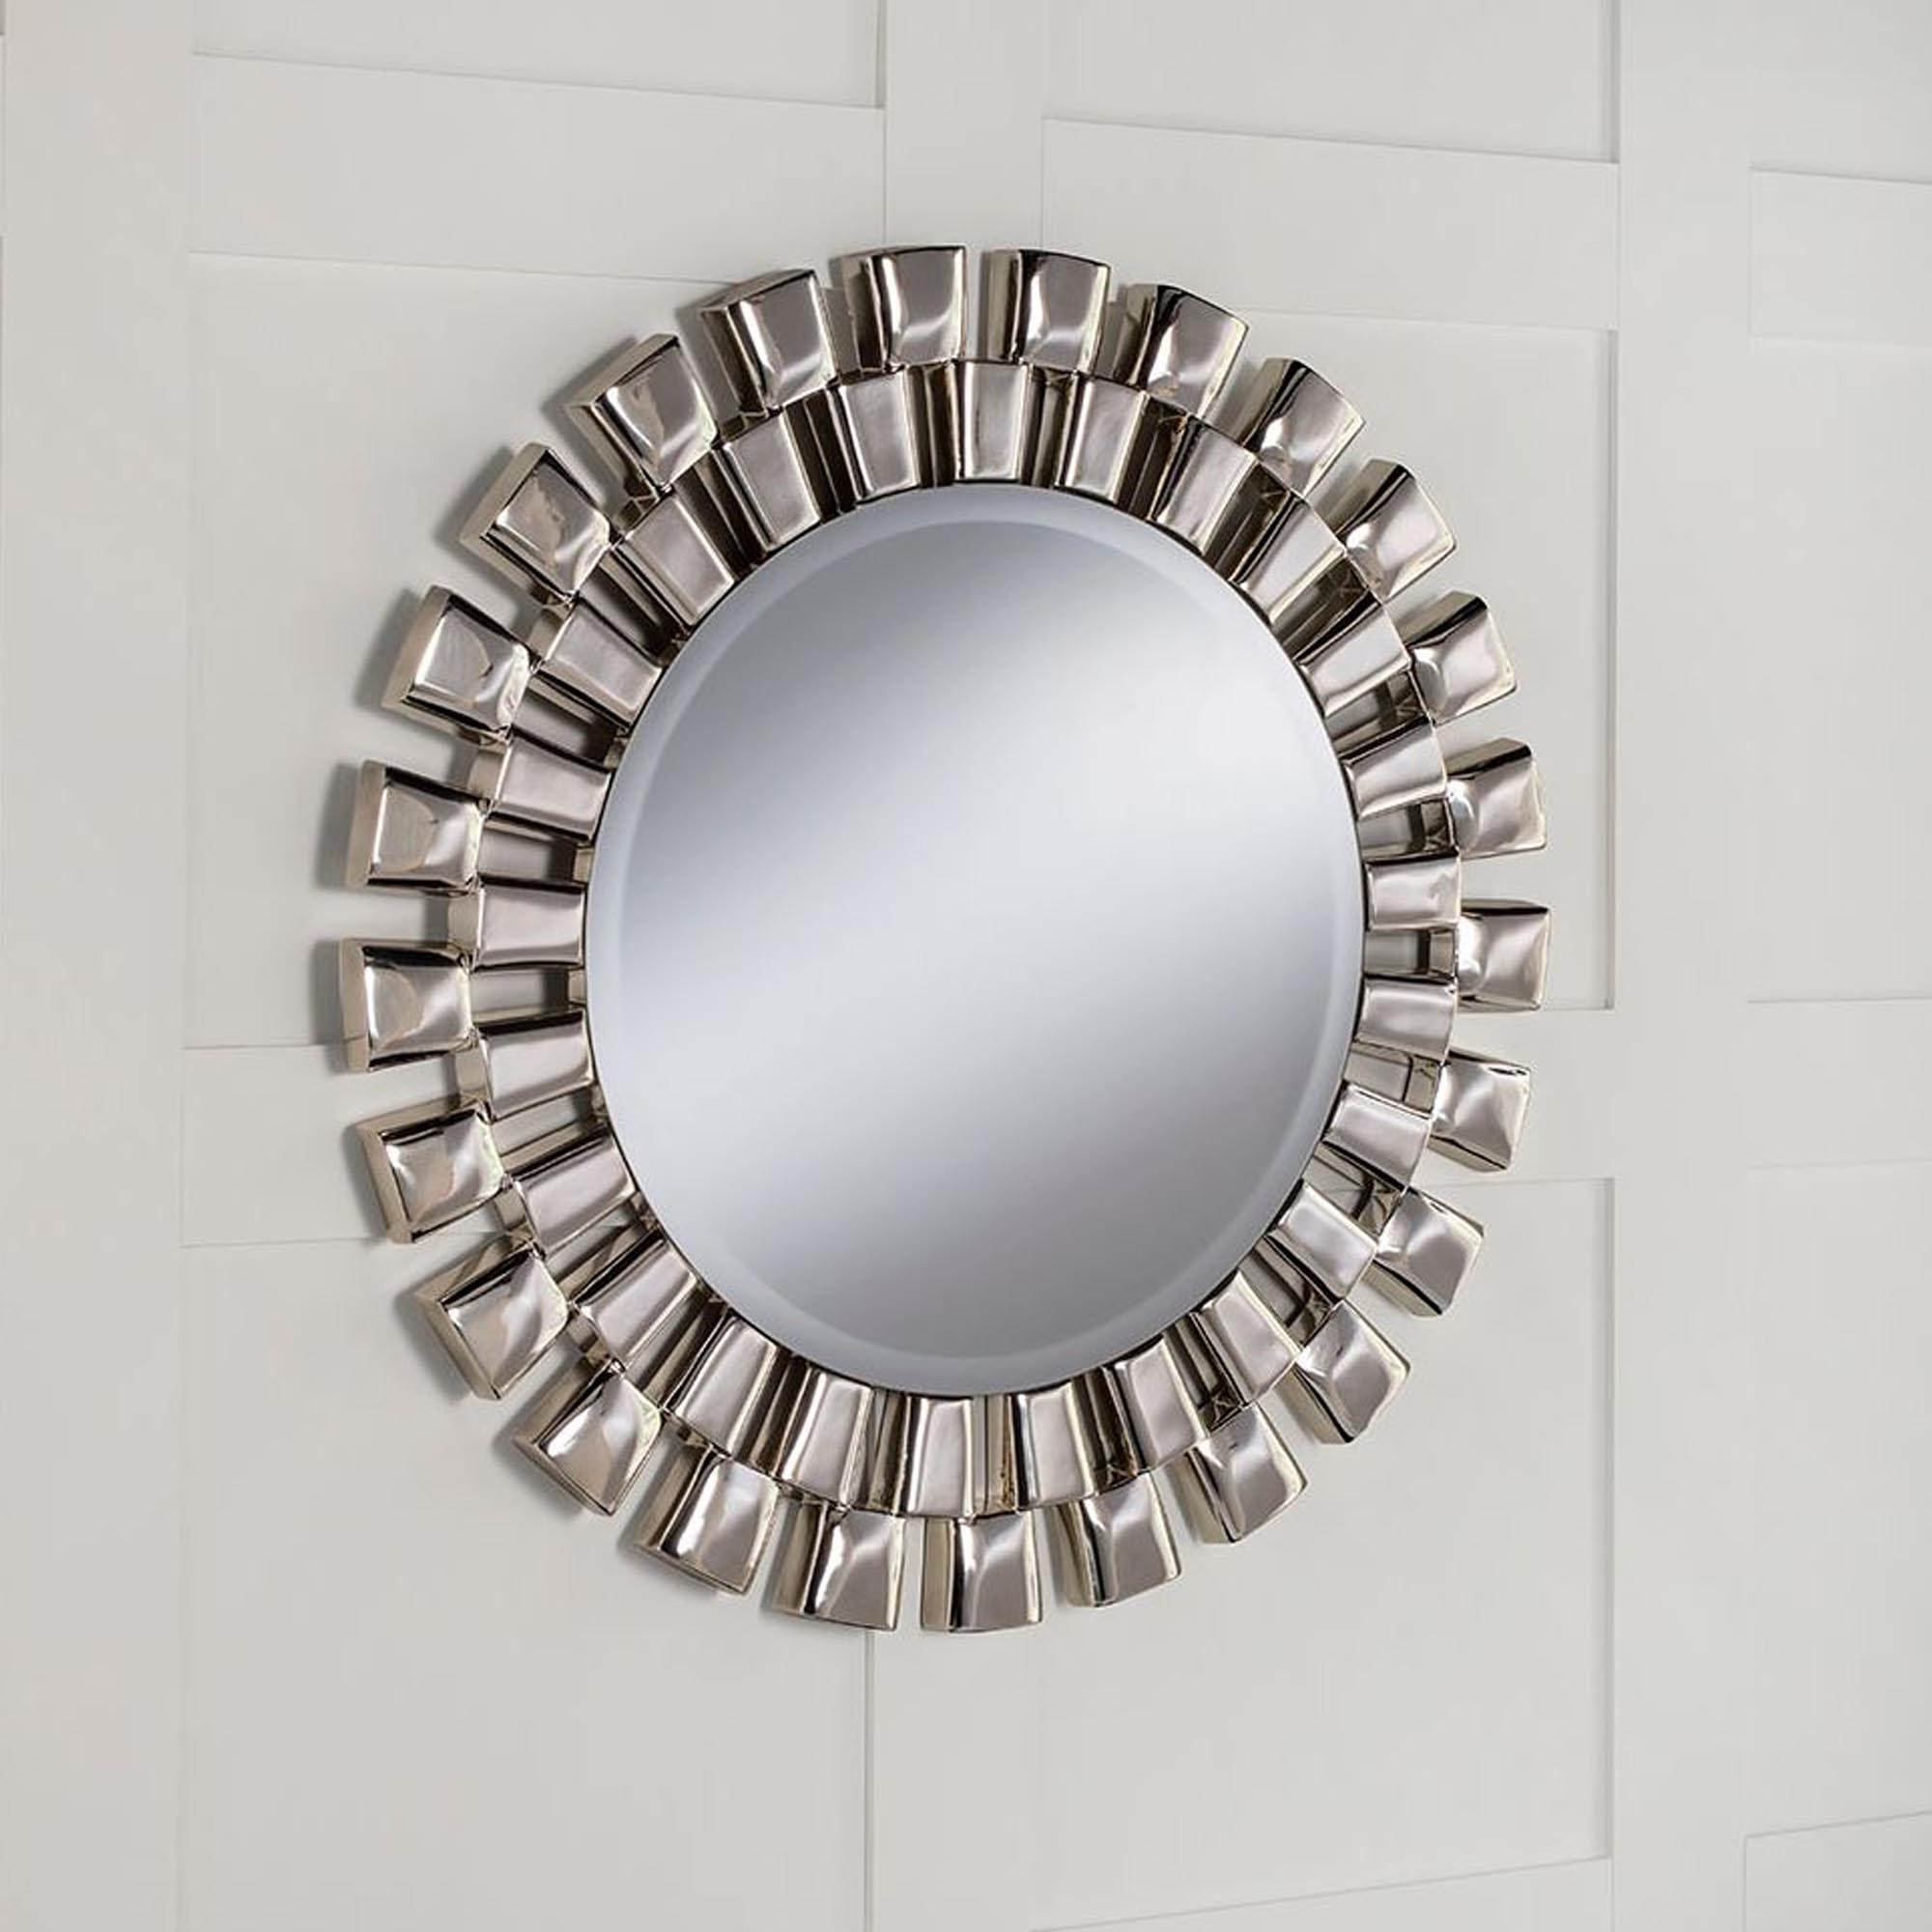 Silver Round Wall Mirrors Within Best And Newest Round Contemporary Chrome Silver Wall Mirror (View 14 of 20)